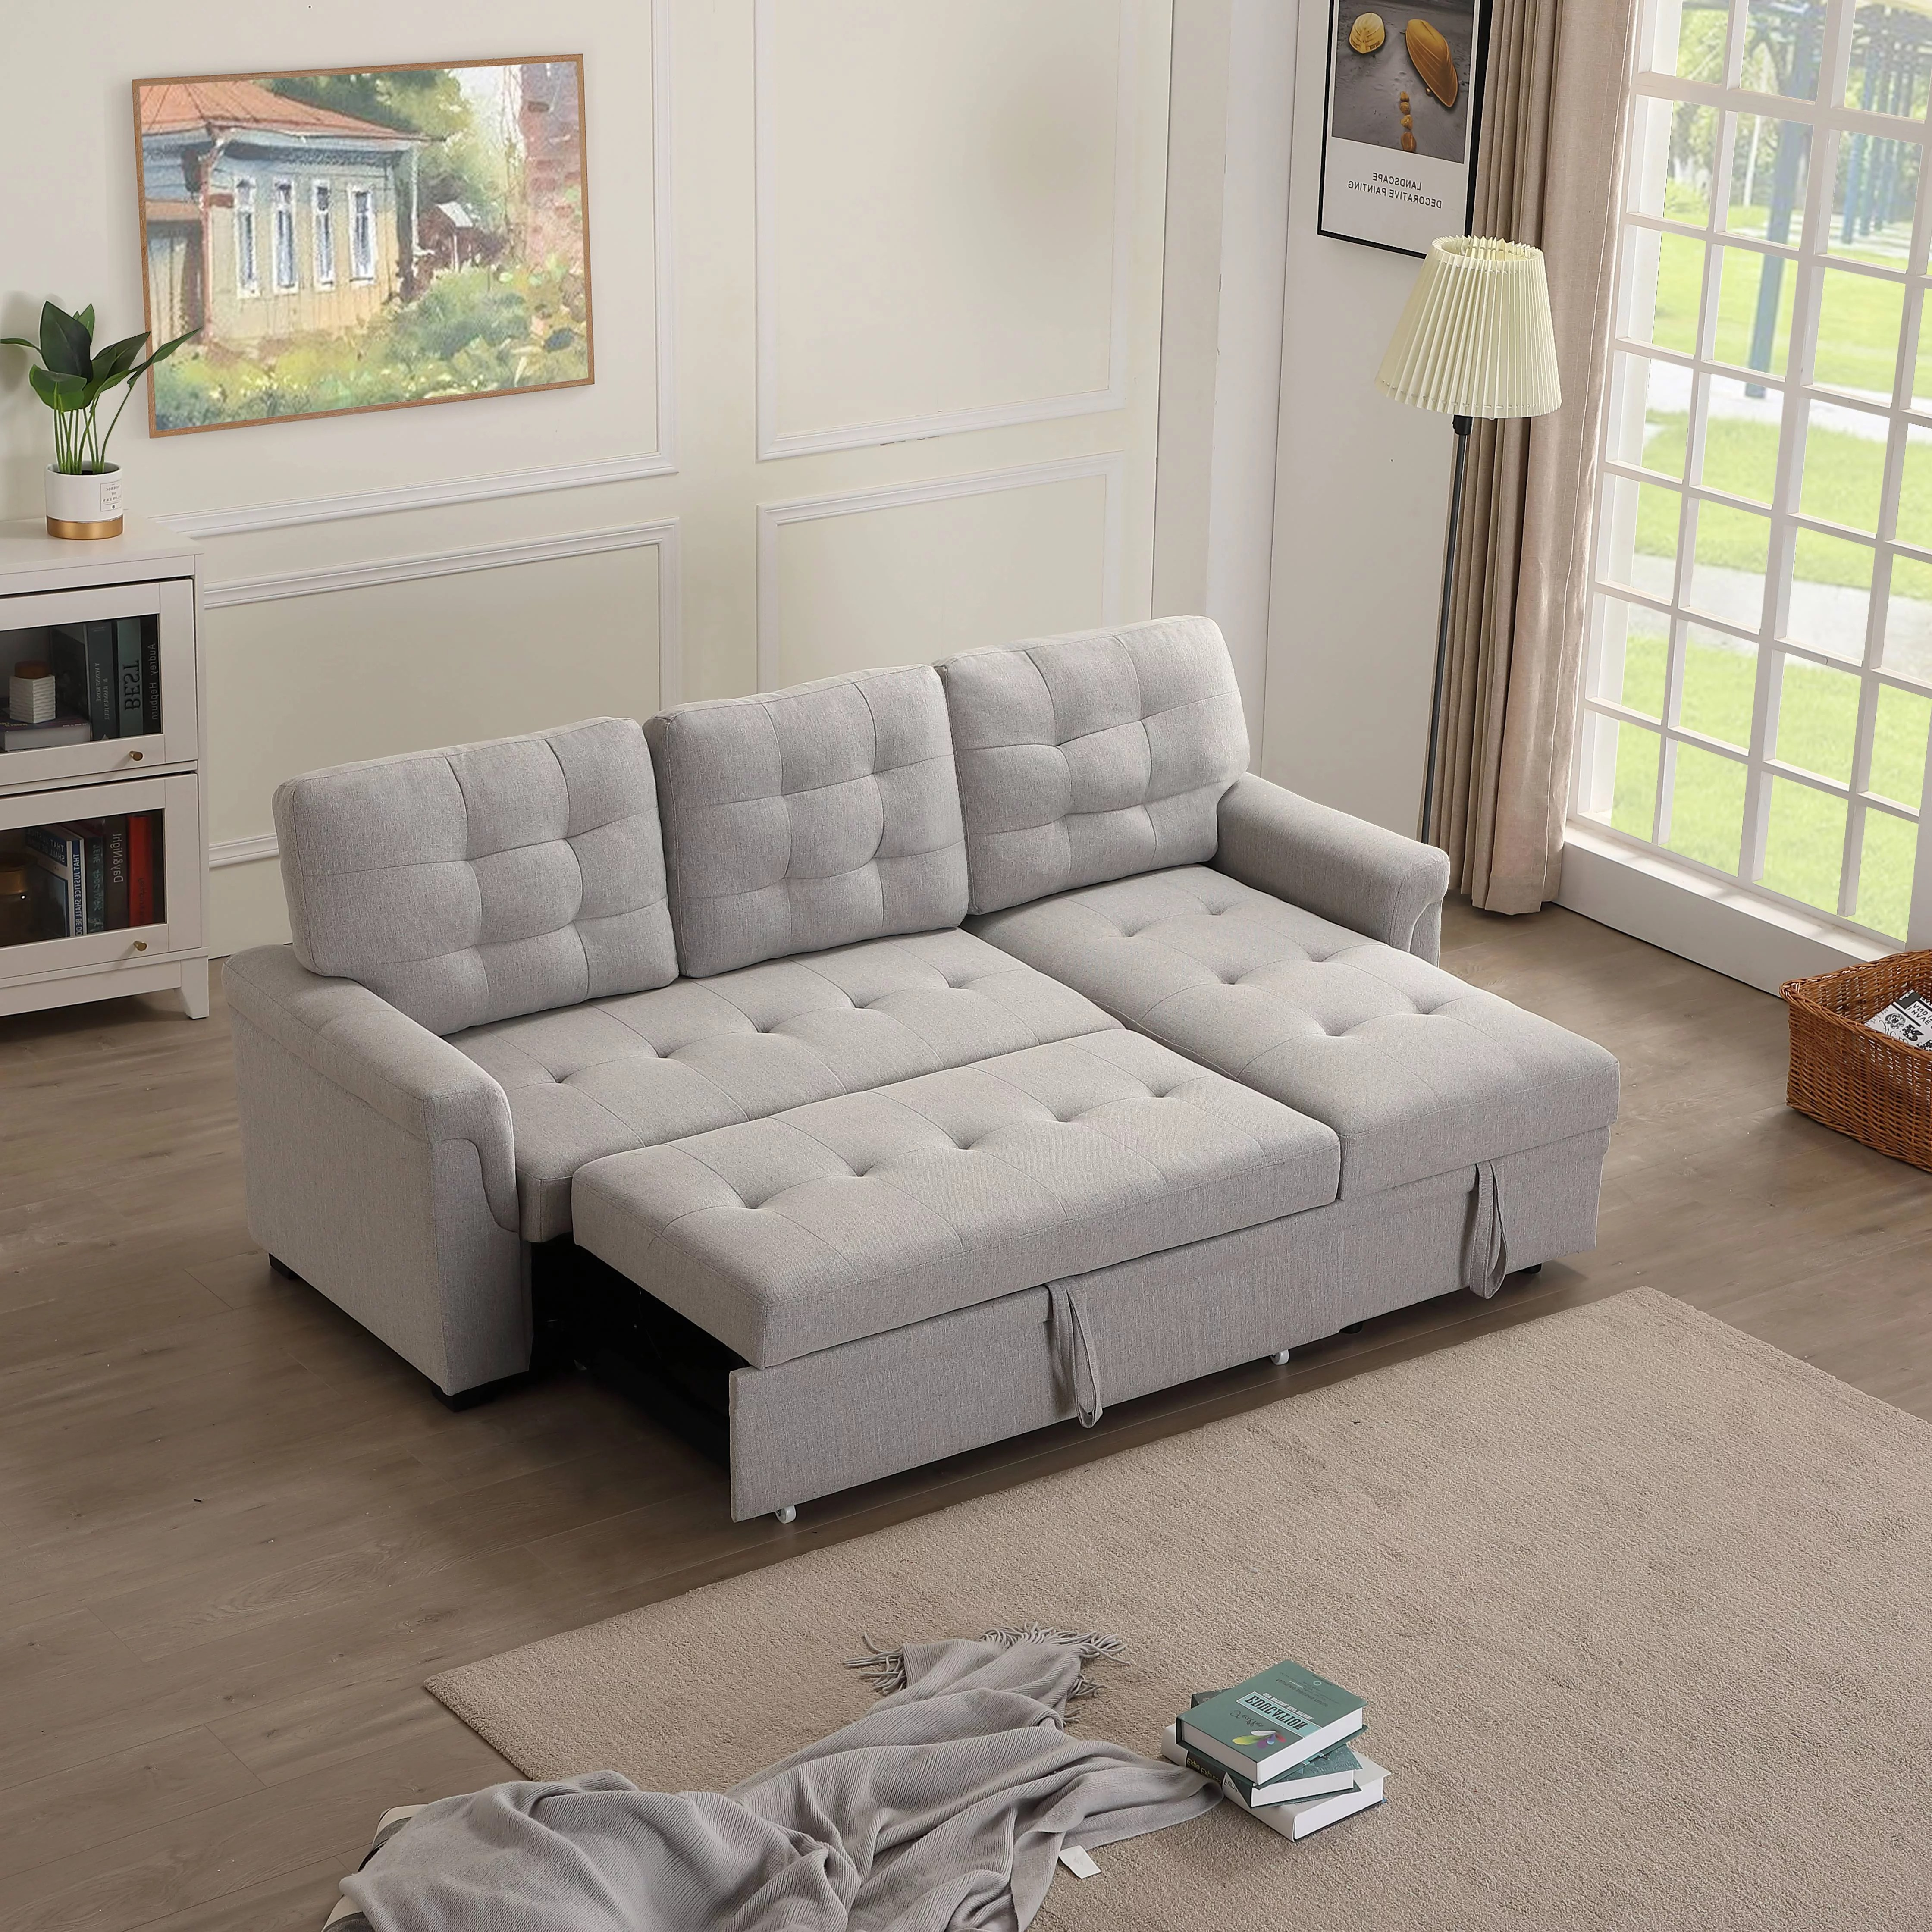 Urhomepro Sectional Sofa Sleeper With Reversible Chaise Modern Convertible Sofa Bed Premium Linen Fabric Living Room Couches And Sofas With Storage Wheels Living Room Furniture For Home Q13712 Walmart Com Walmart Com